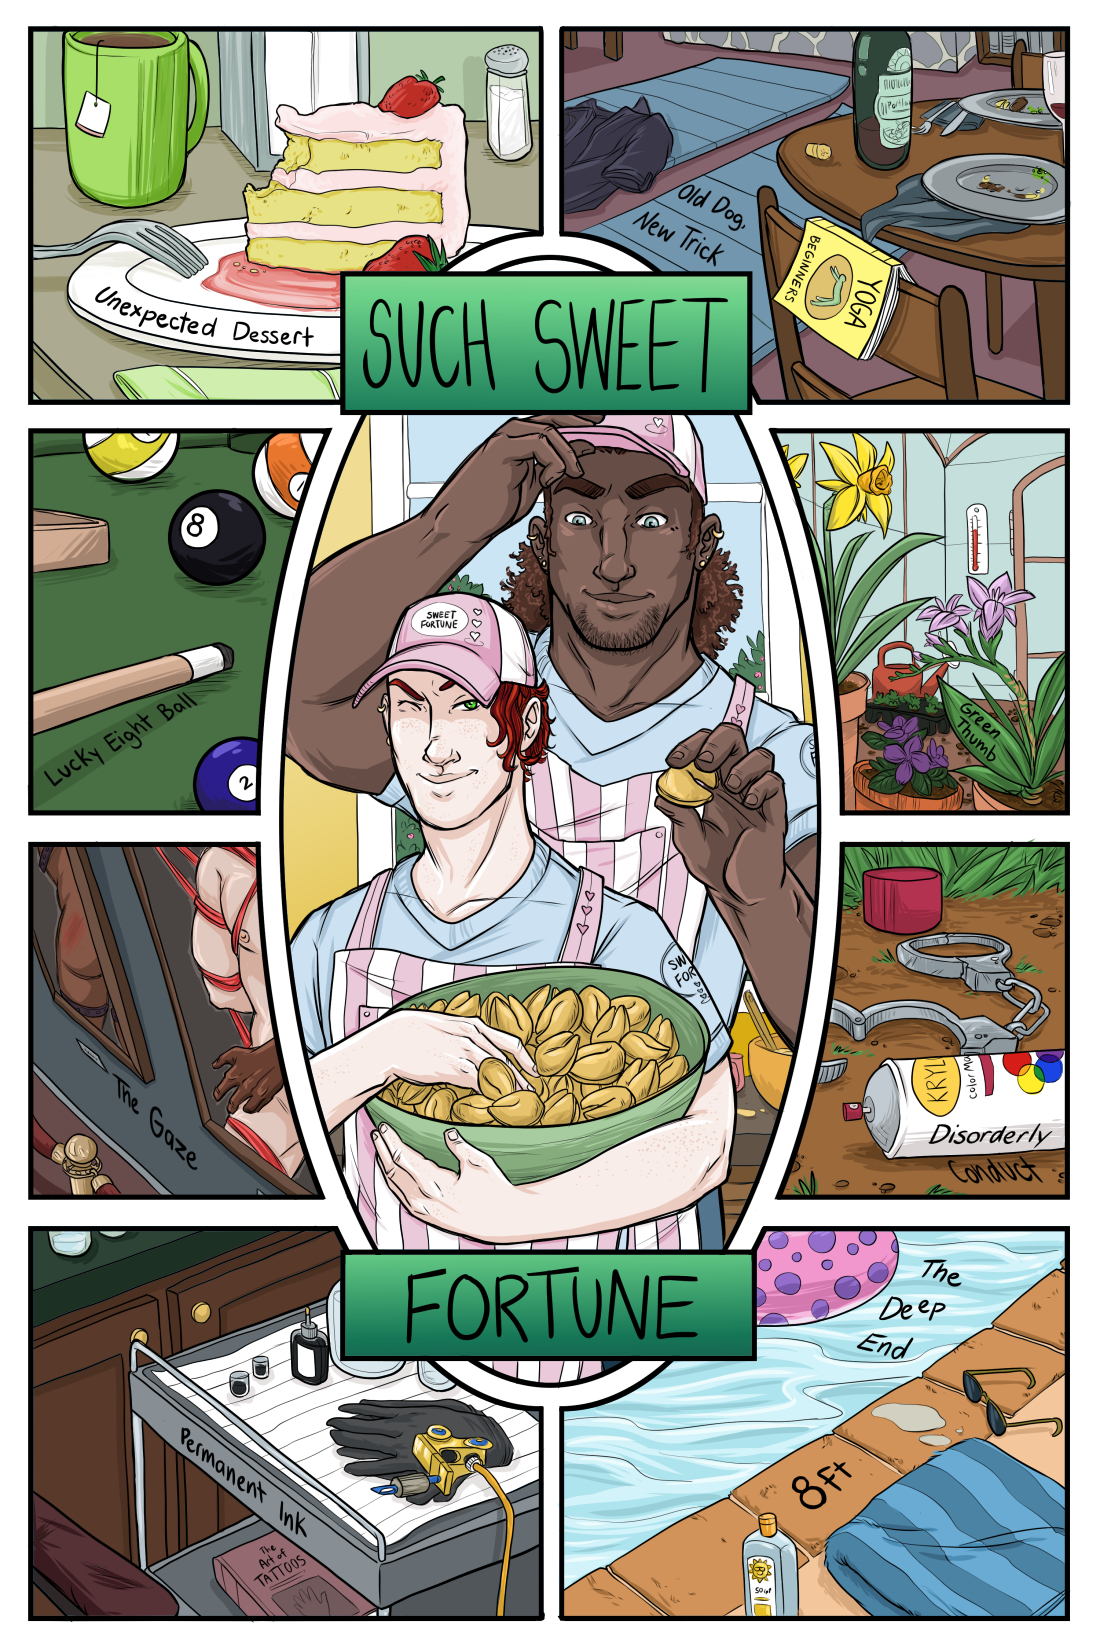 Such Sweet Fortune: A Collection of Lover's Tales